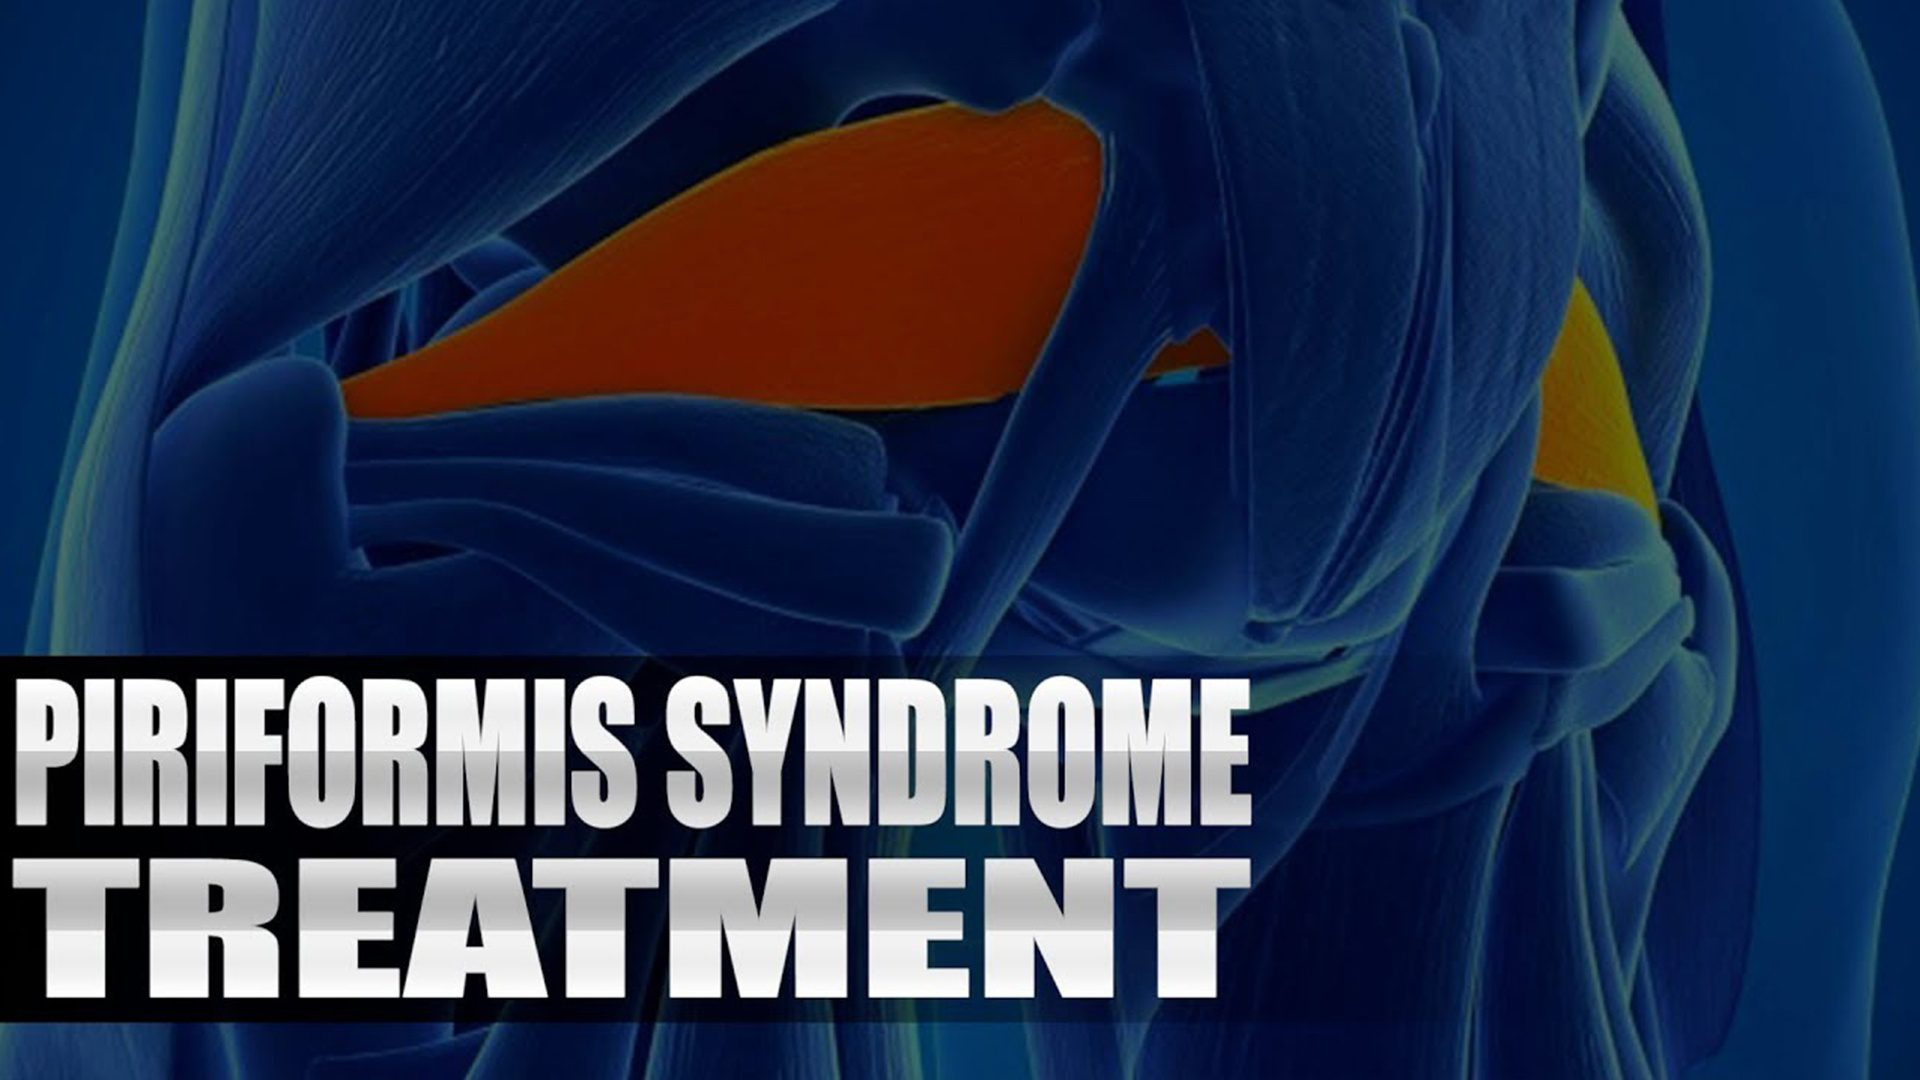 Piriformis Syndrome Treatment Chiropractor | El Paso, TX. | Video